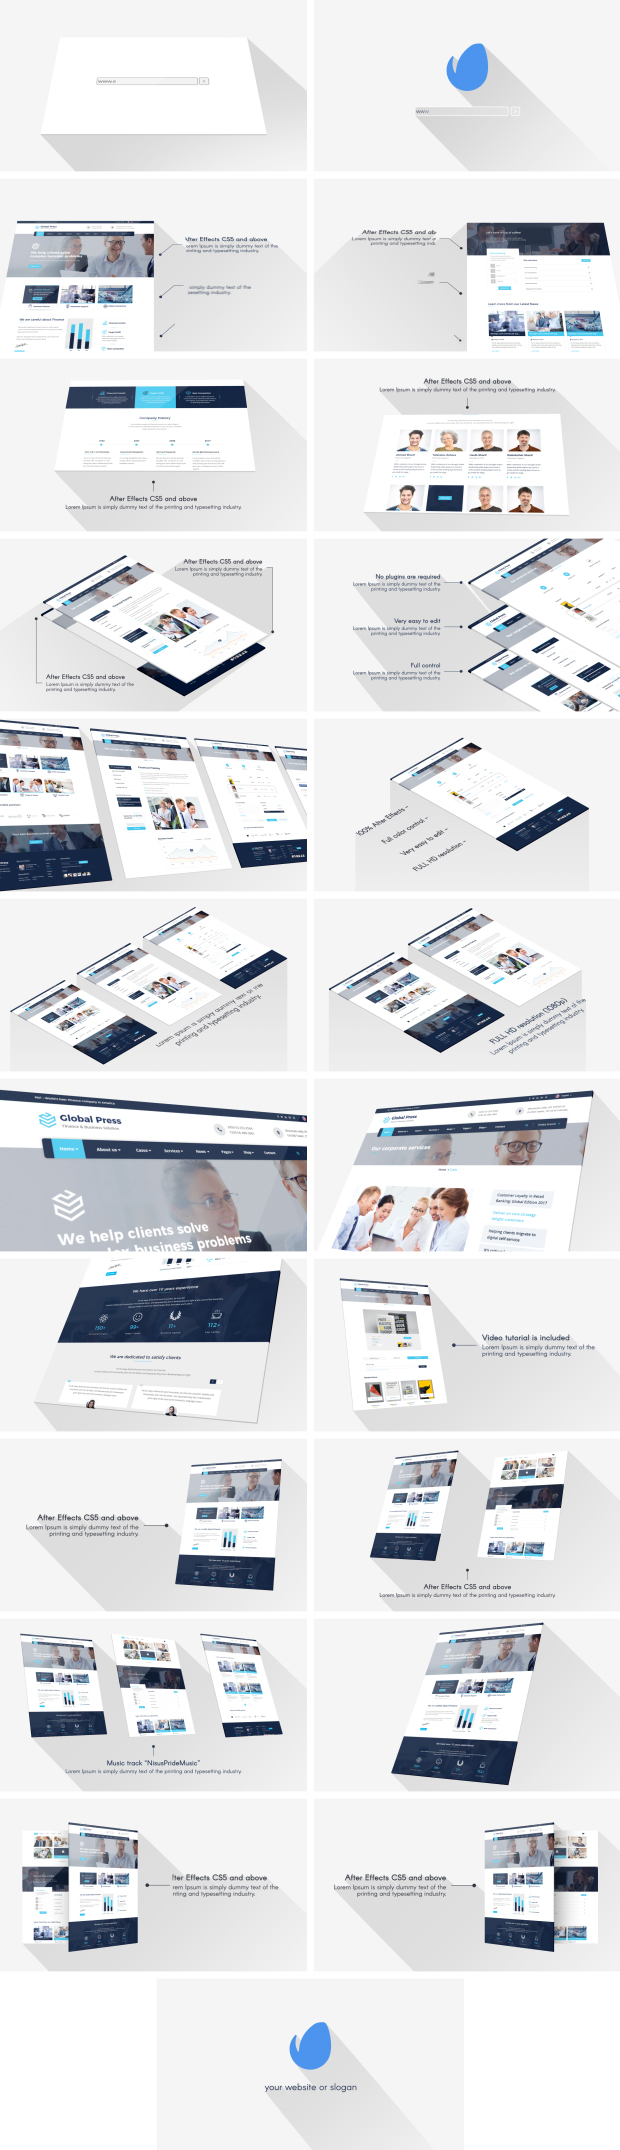 Minimal Website Presentation 3 - stena.jpg